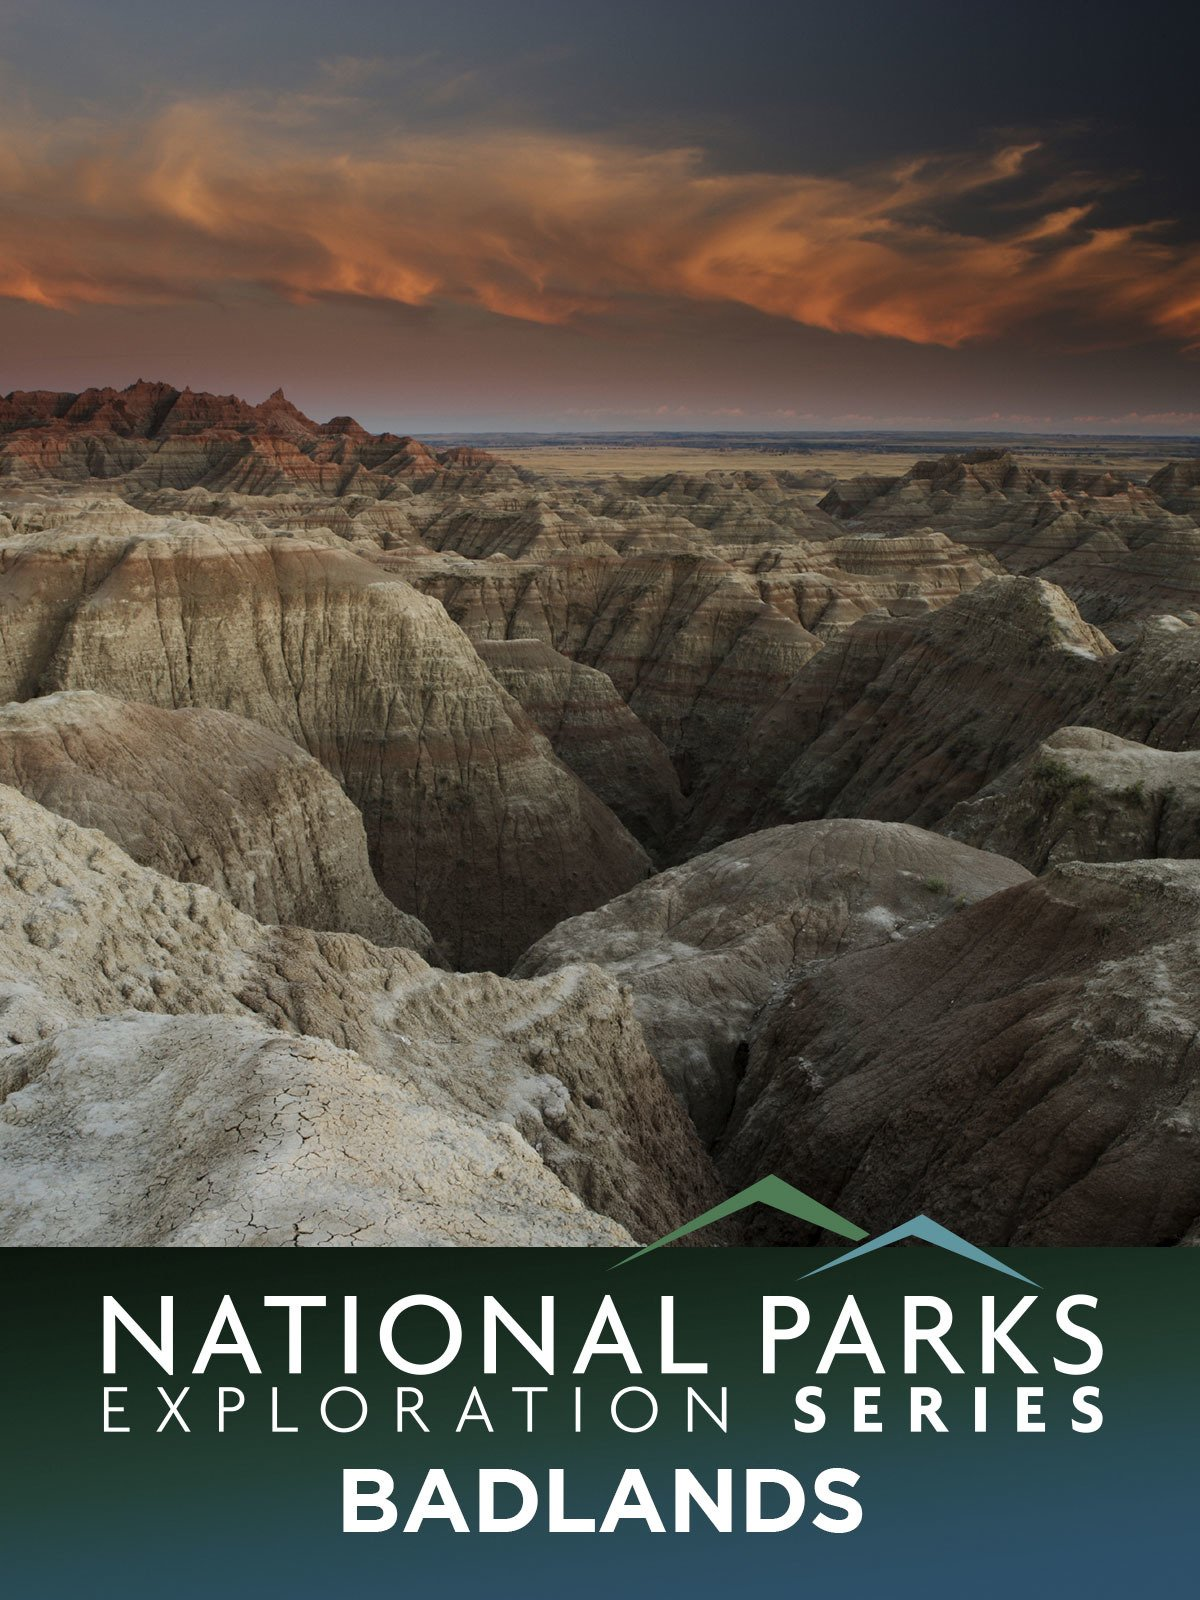 National Parks Exploration Series: The Badlands